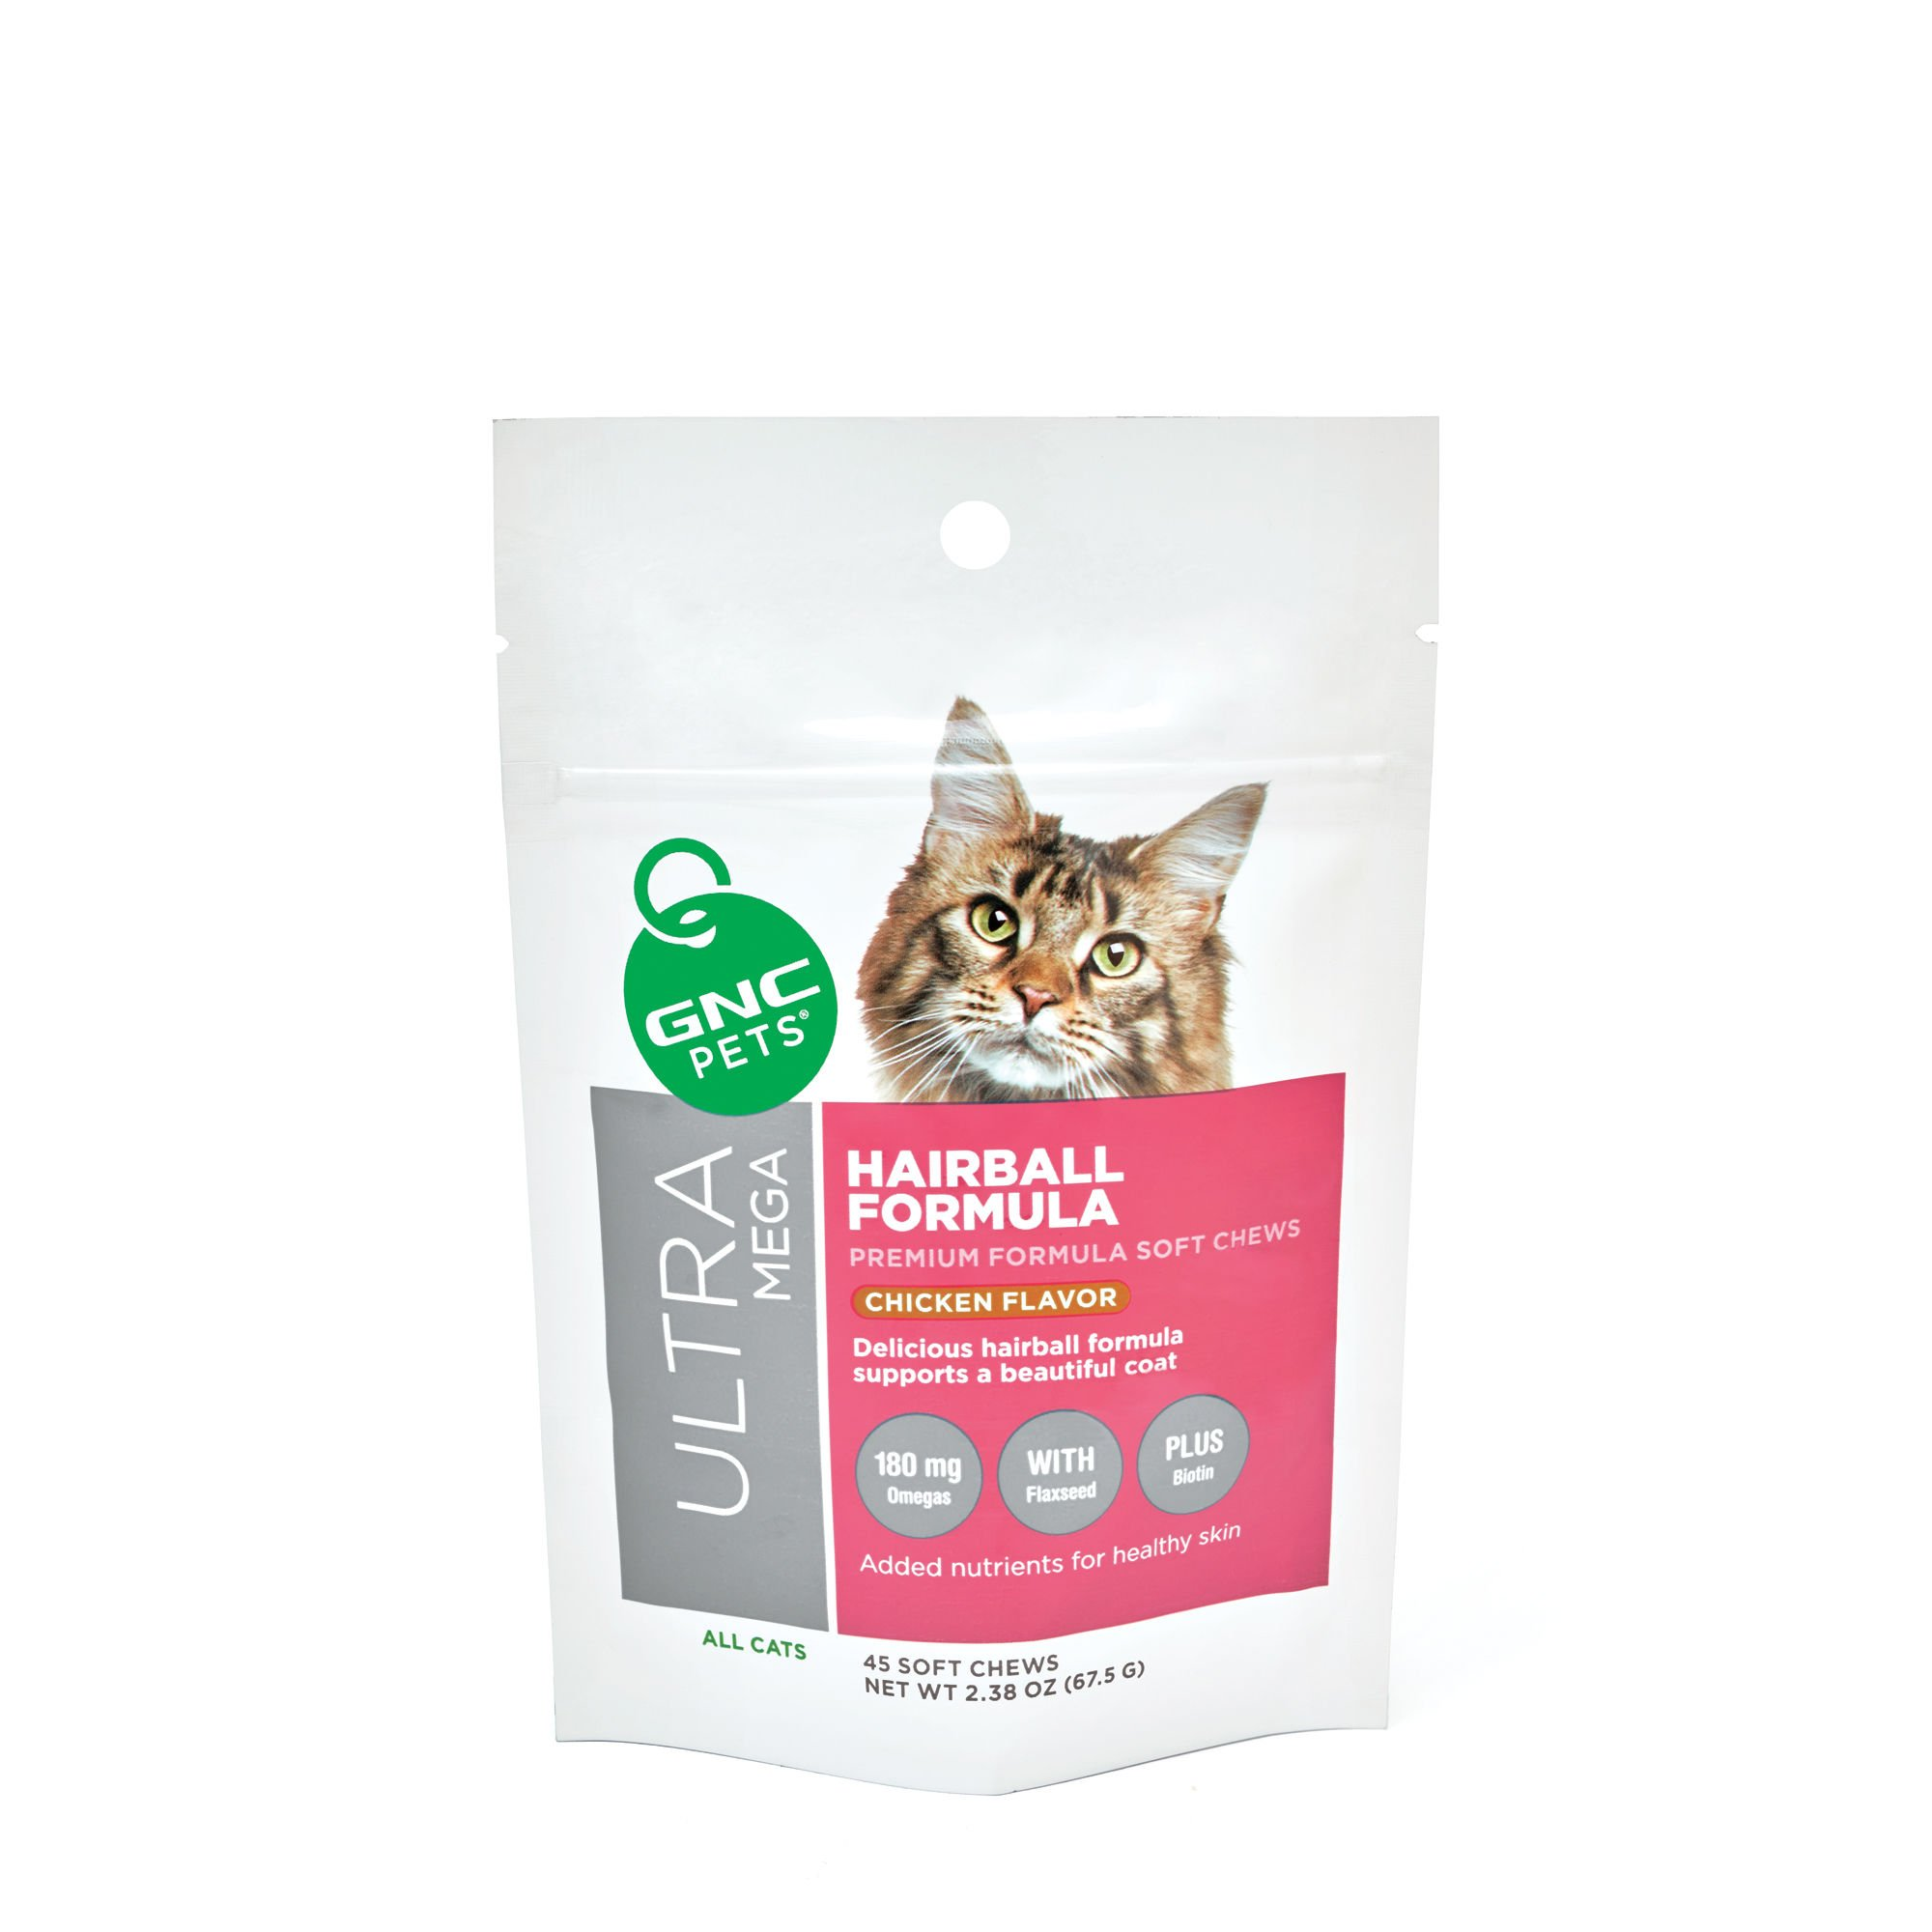 GNC Pets Ultra Mega Hairball Formula for All Cats, Chicken Flavor- 45 Soft Chews